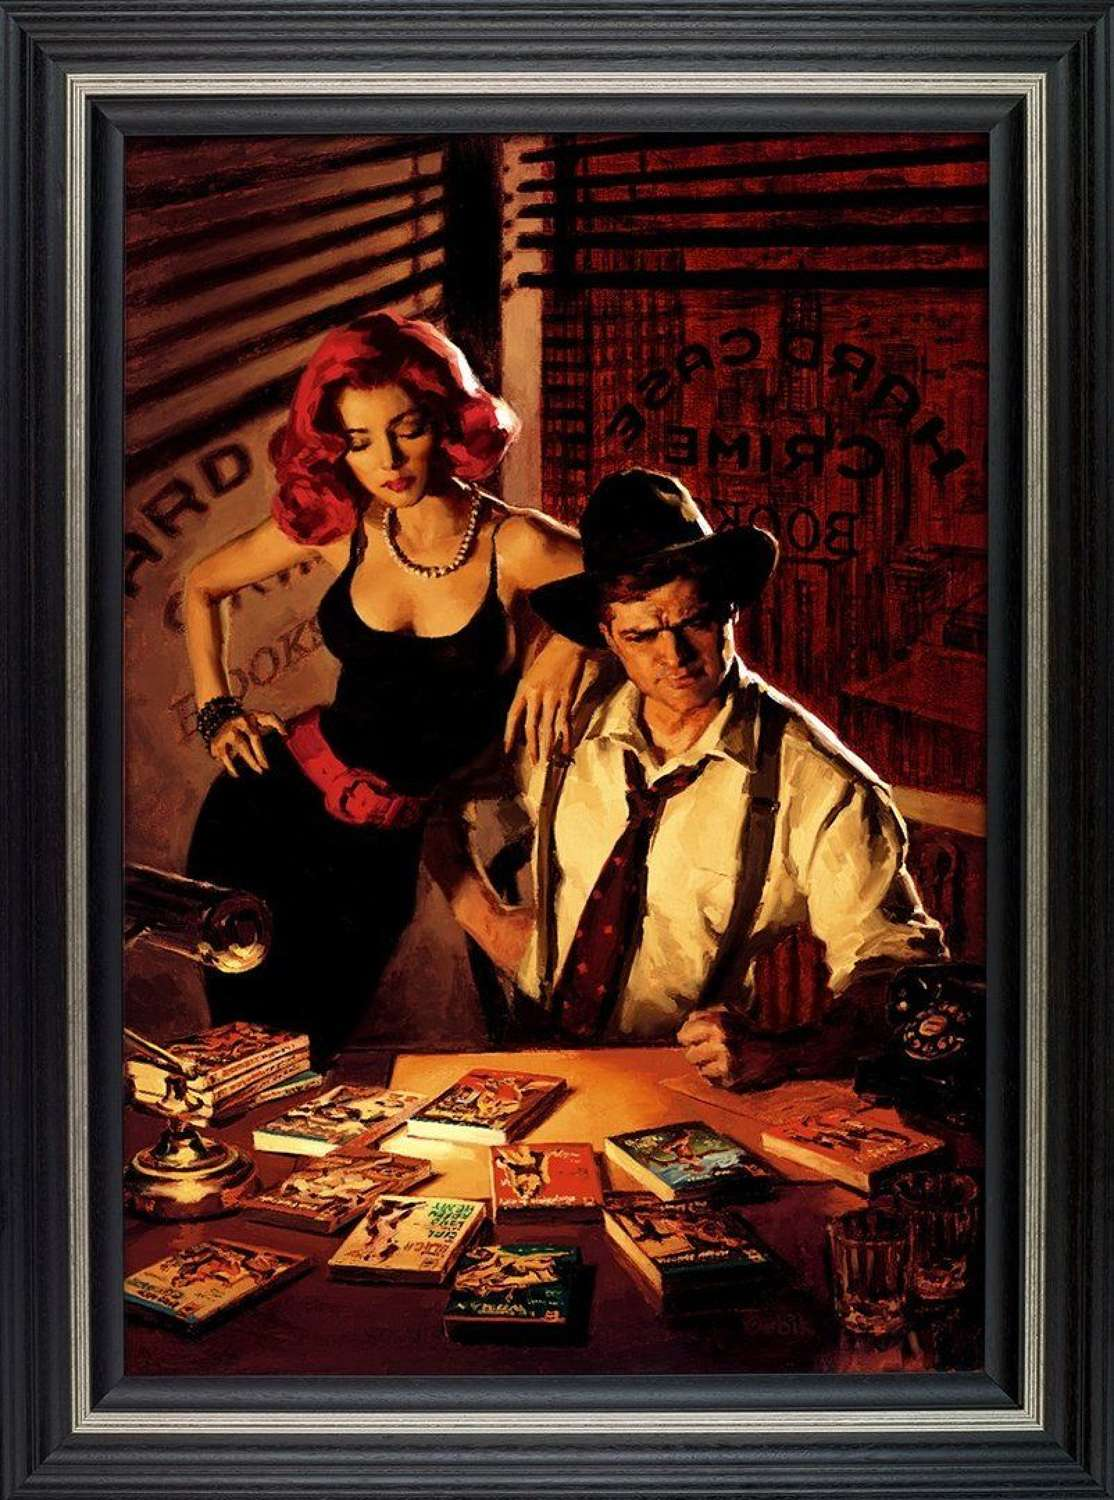 Fifty - To - One Framed Canvas Art Print by Glen Orbik